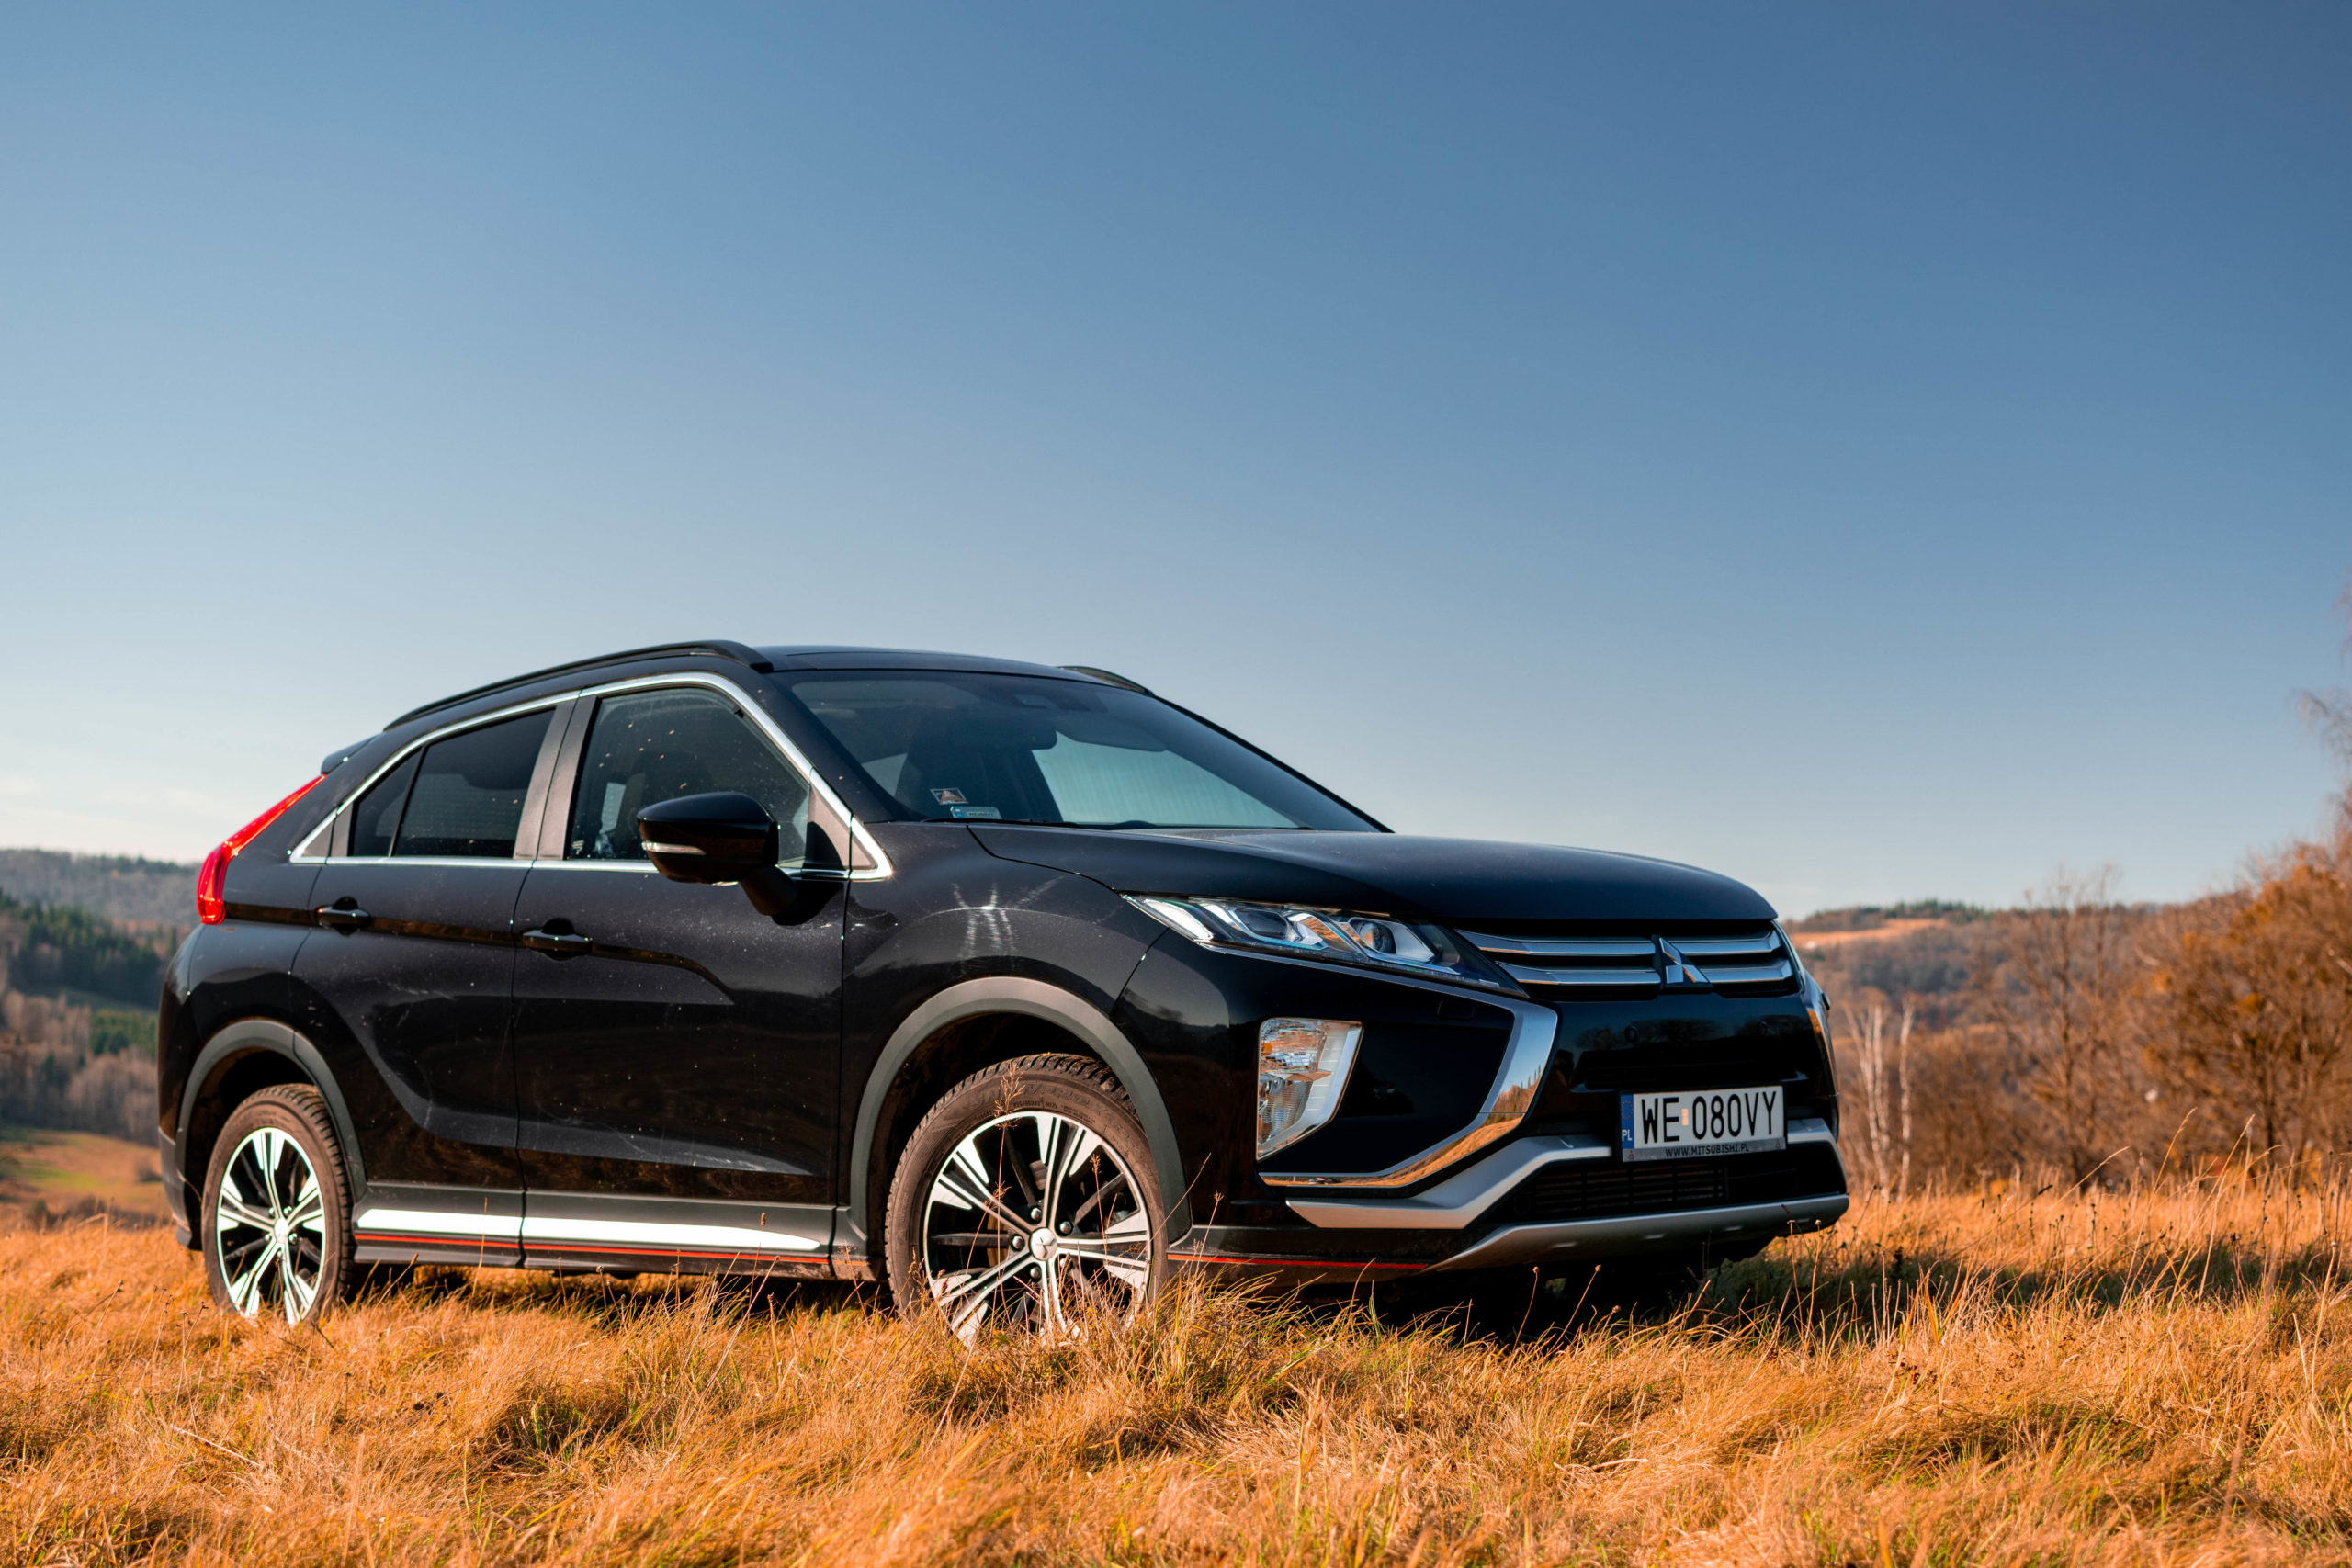 Mitsubishi Eclipse Cross 1.5T 163 INSTYLE CVT 4WD